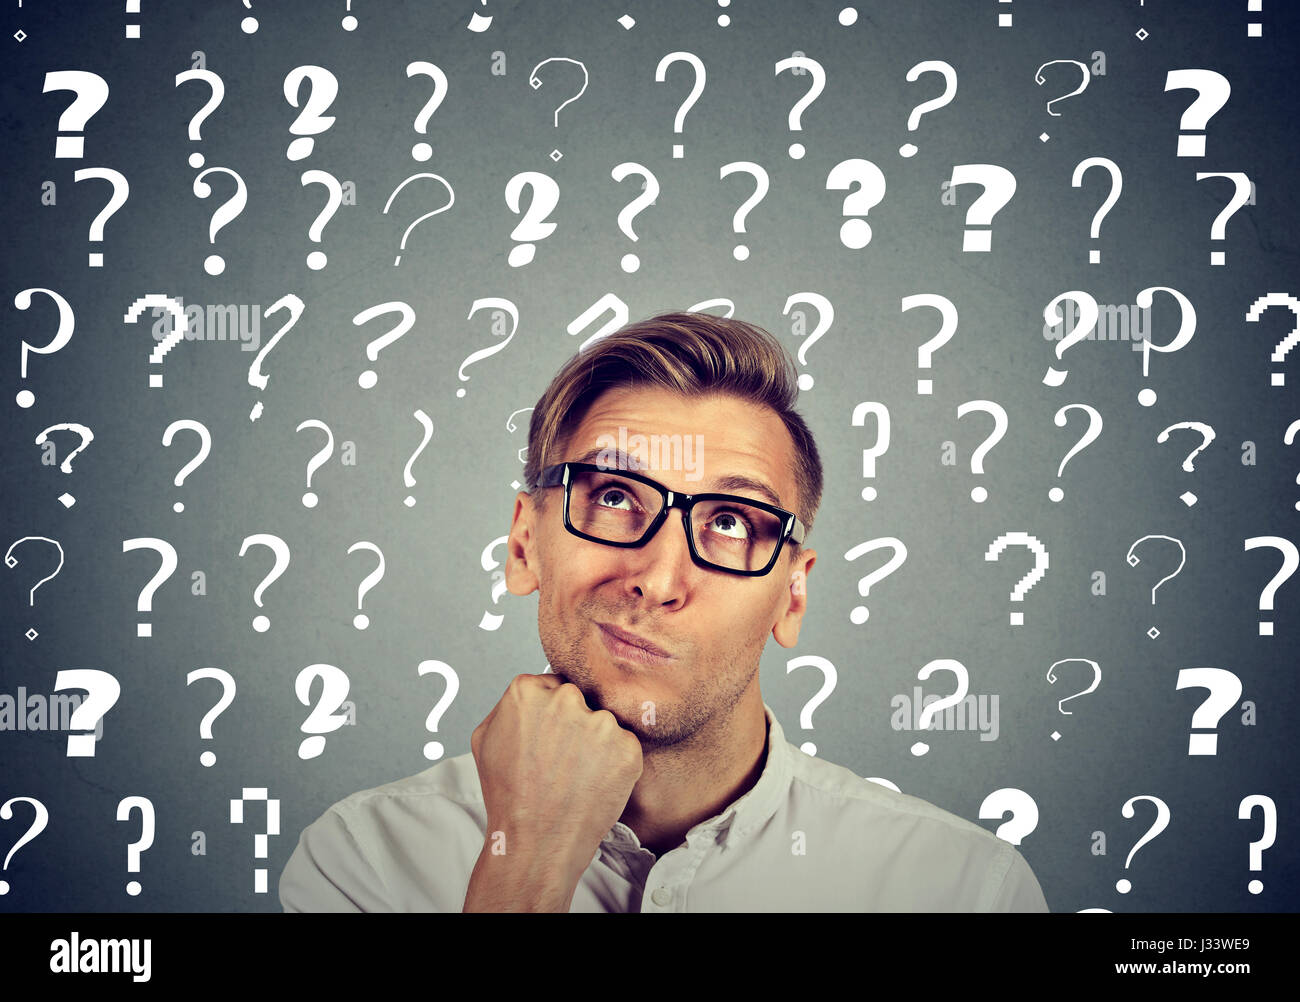 Thoughtful confused handsome man in glasses has too many questions and no answer - Stock Image